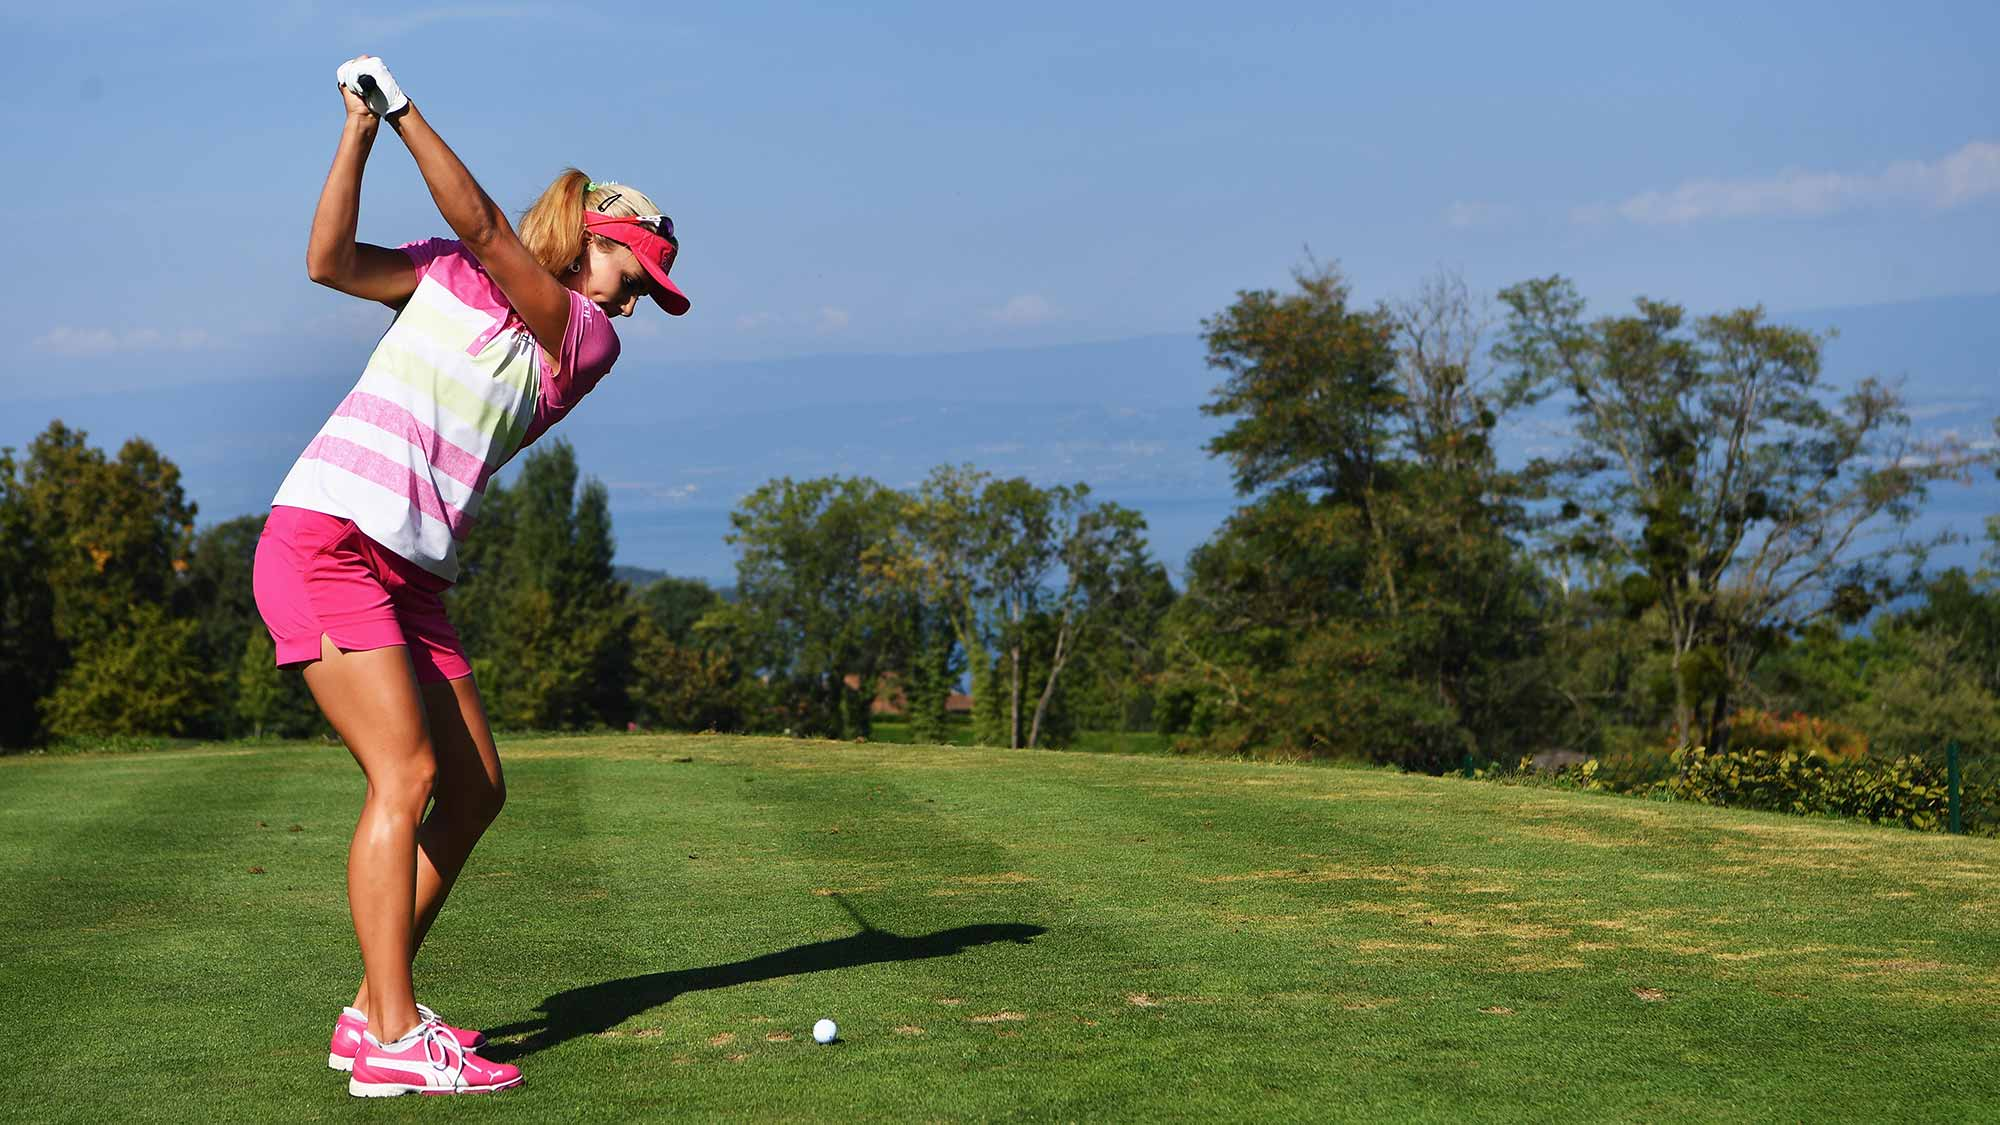 Lexi Thompson of USA plays a shot during practice prior to the start of the Evian Championship